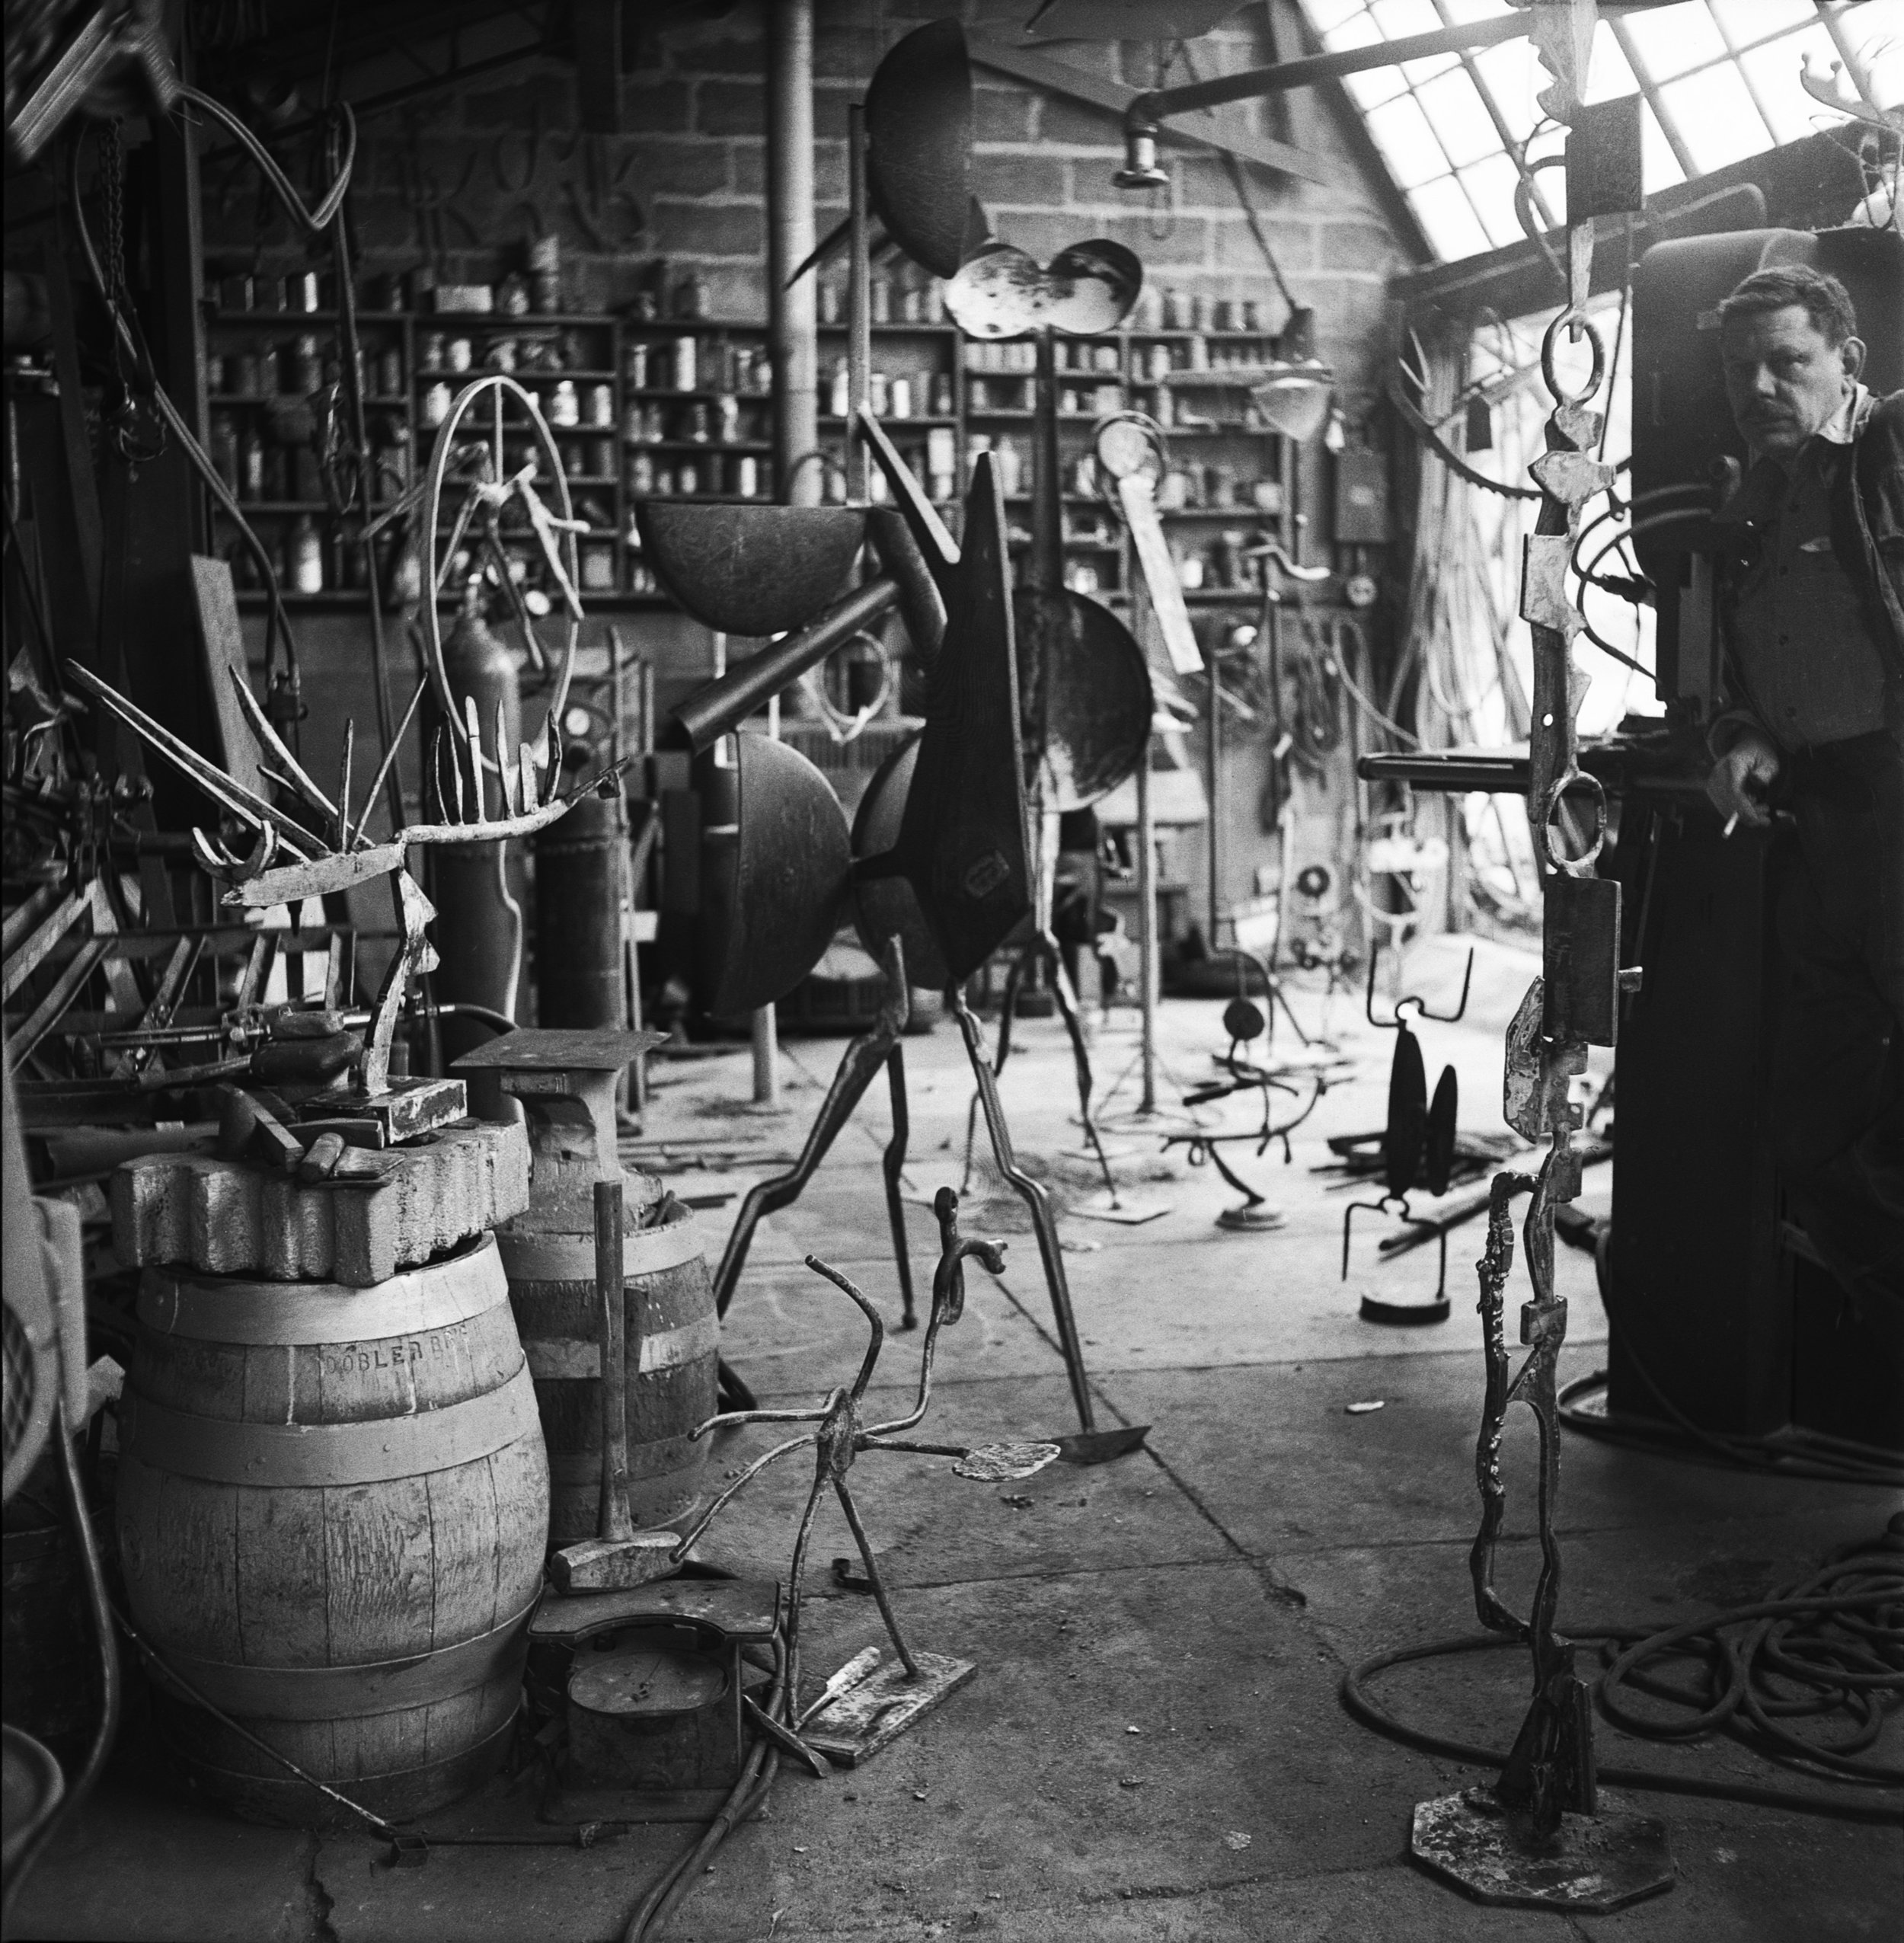 David Smith in his workshop, Bolton Landing, 1953. Photograph by the artist. © The Estate of David Smith/Licensed by VAGA, New York.